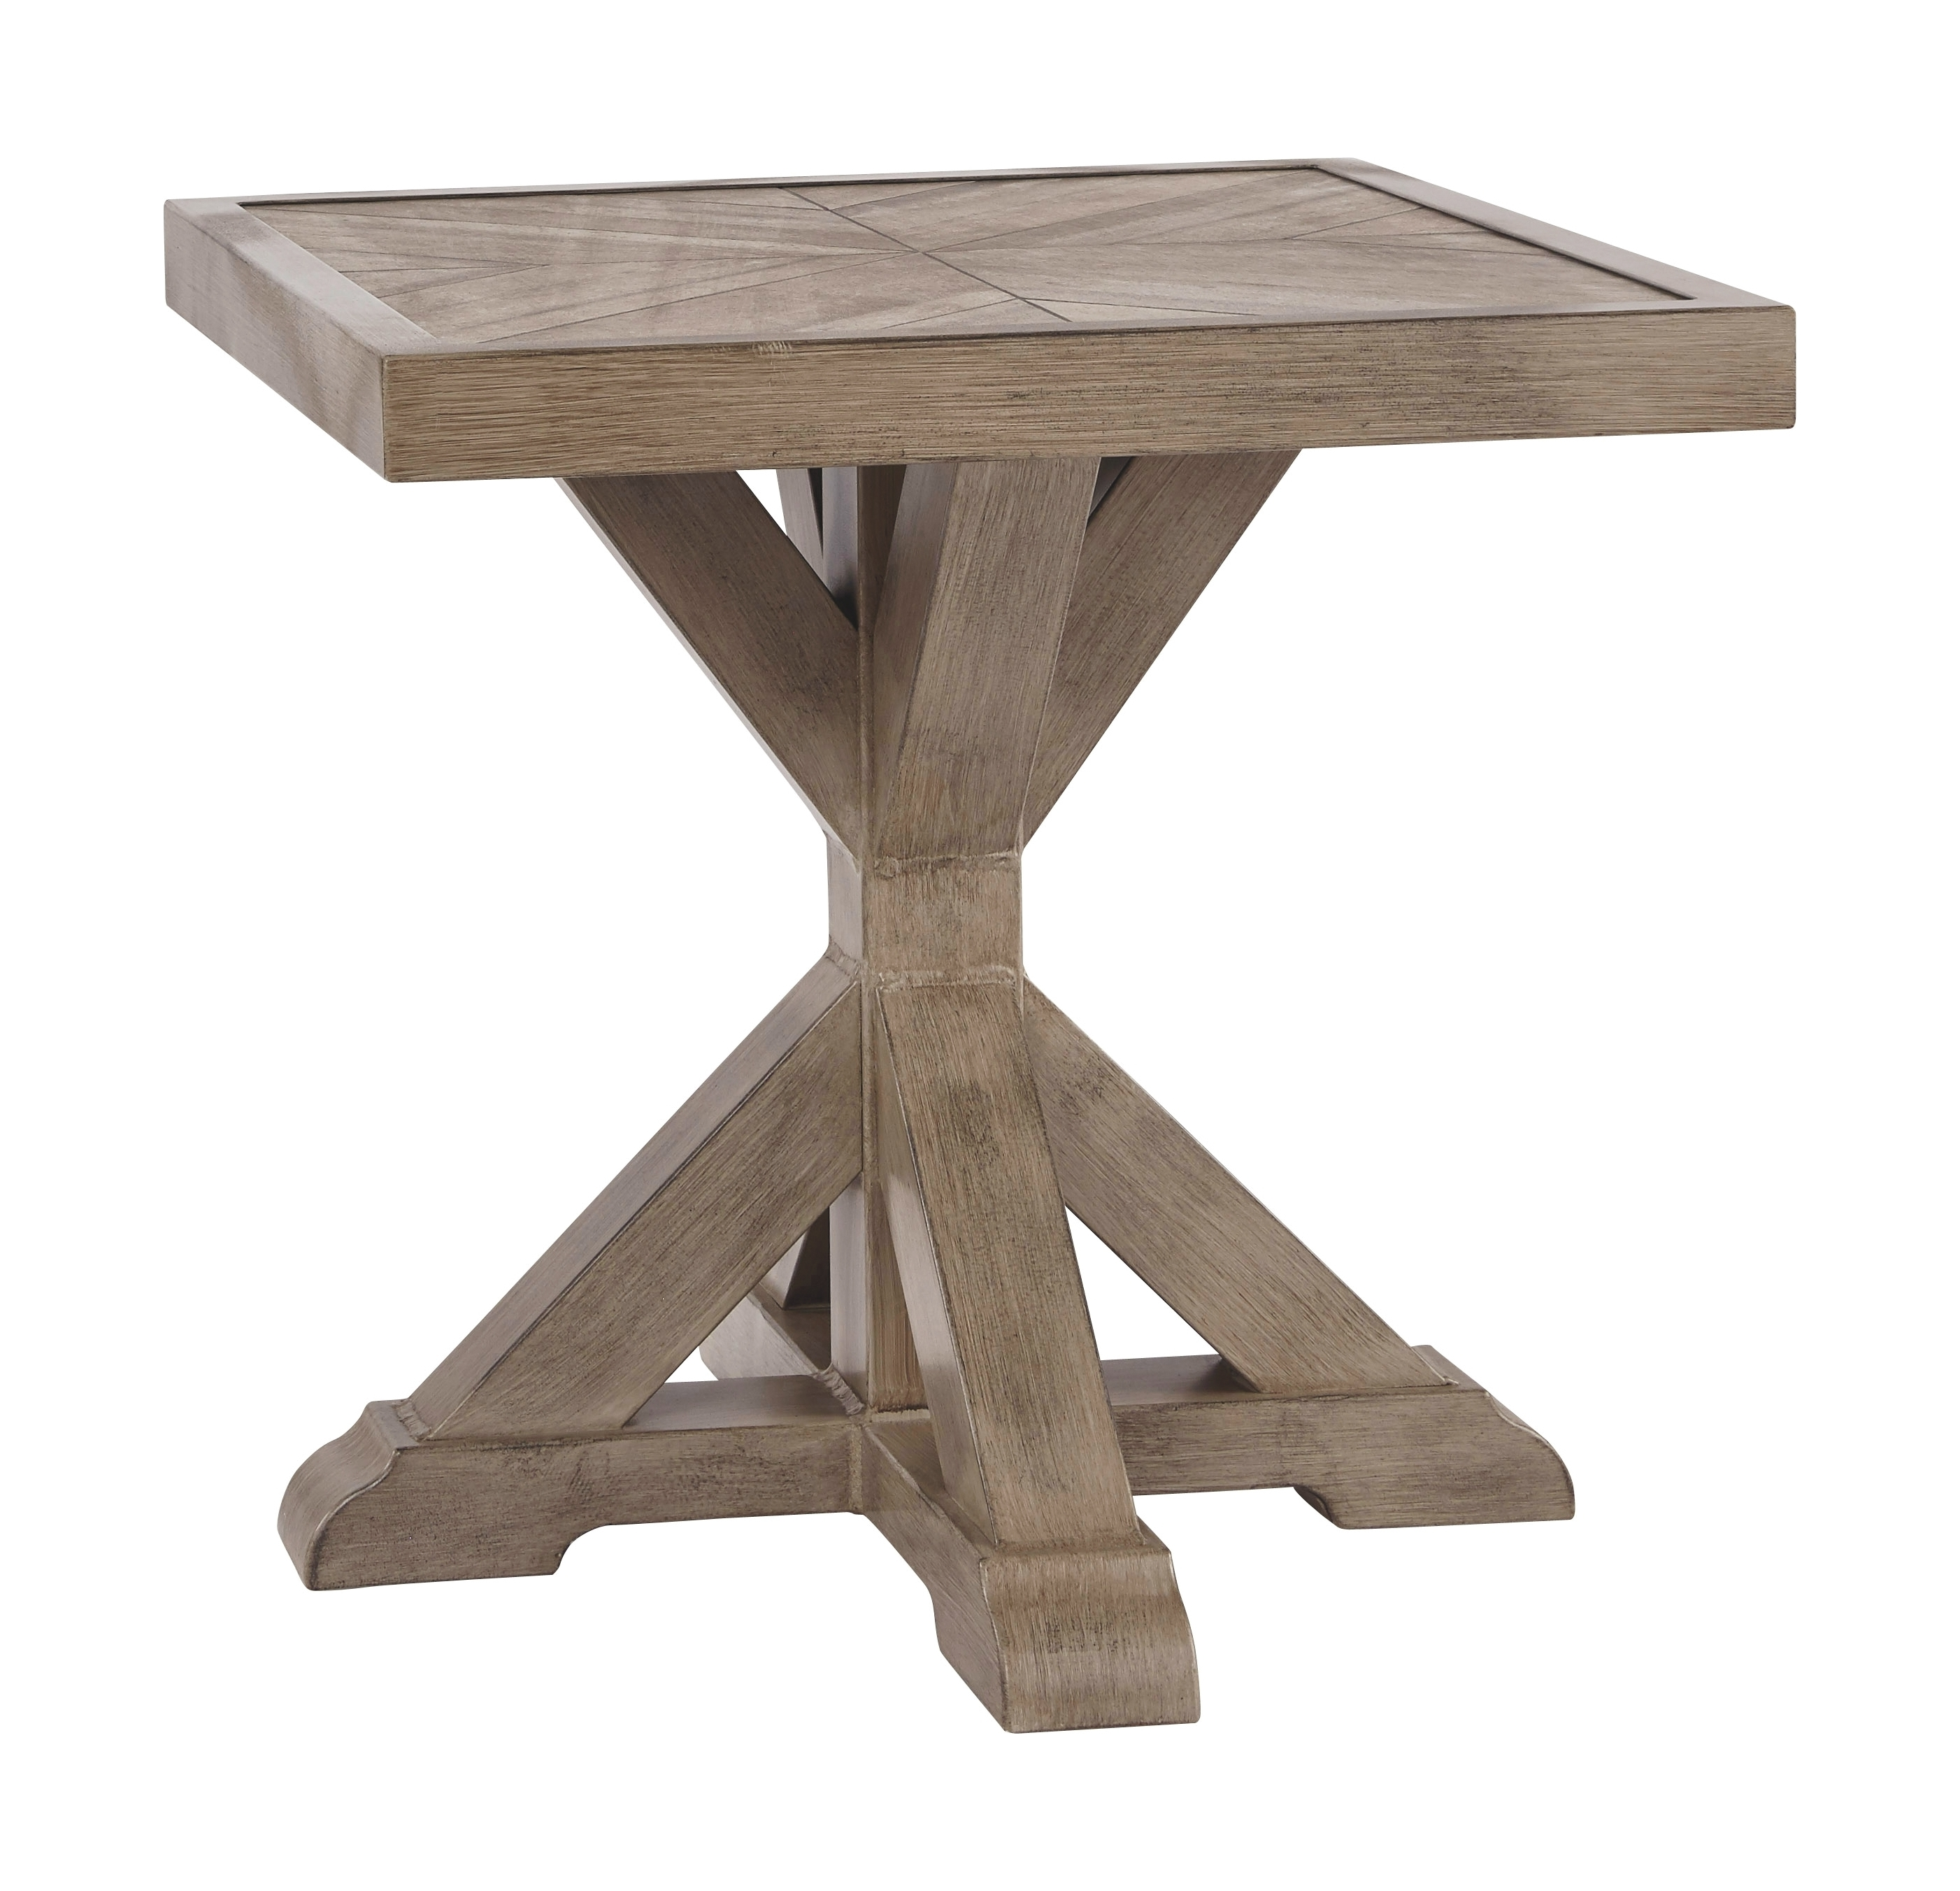 Beachcroft - Beige - Square End Table - Furniture Innovation on Beachcroft Beige Outdoor Living Room Set id=45132